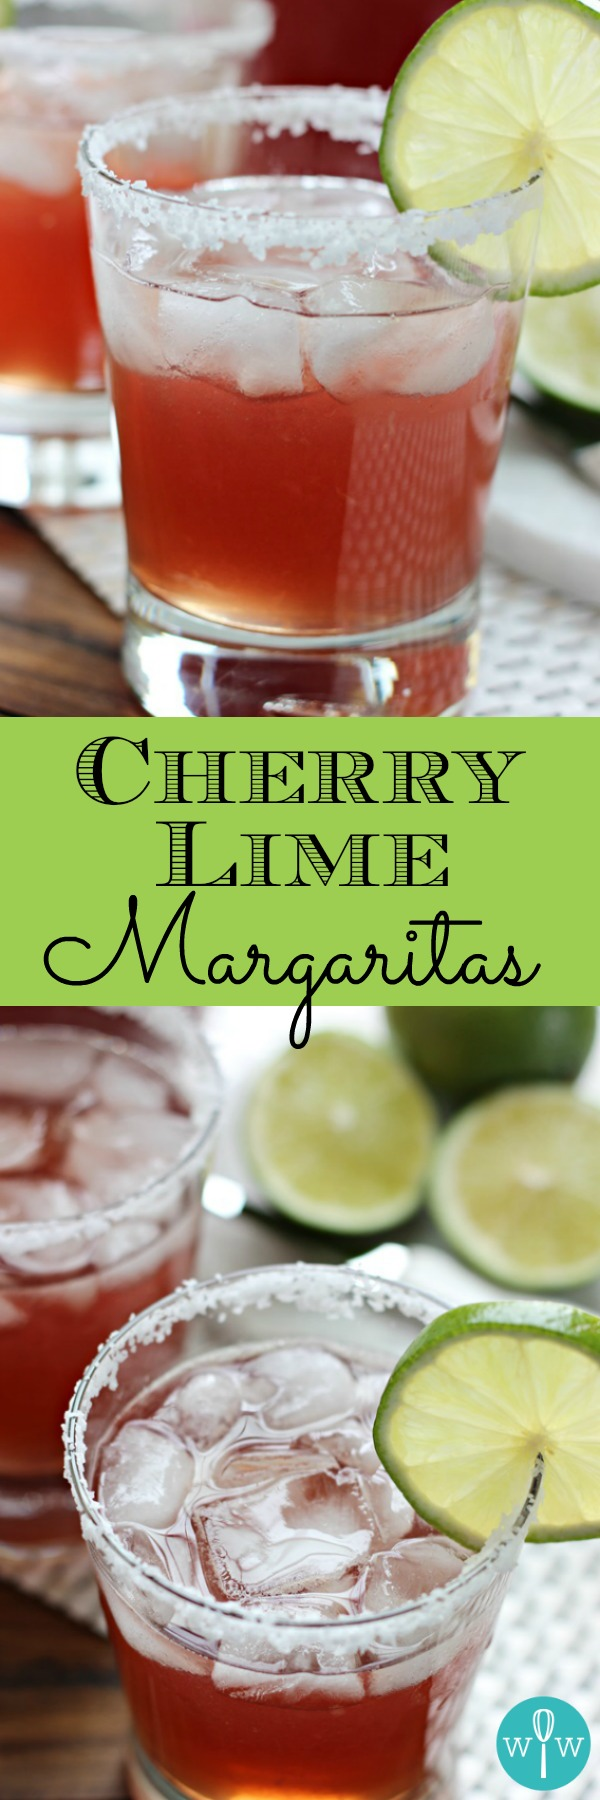 Cherry Limeade Margaritas – A super yummy margarita for those of us who couldn't get enough cherry limeade slushies as a kid! Get your fiesta on! | www.worthwhisking.com